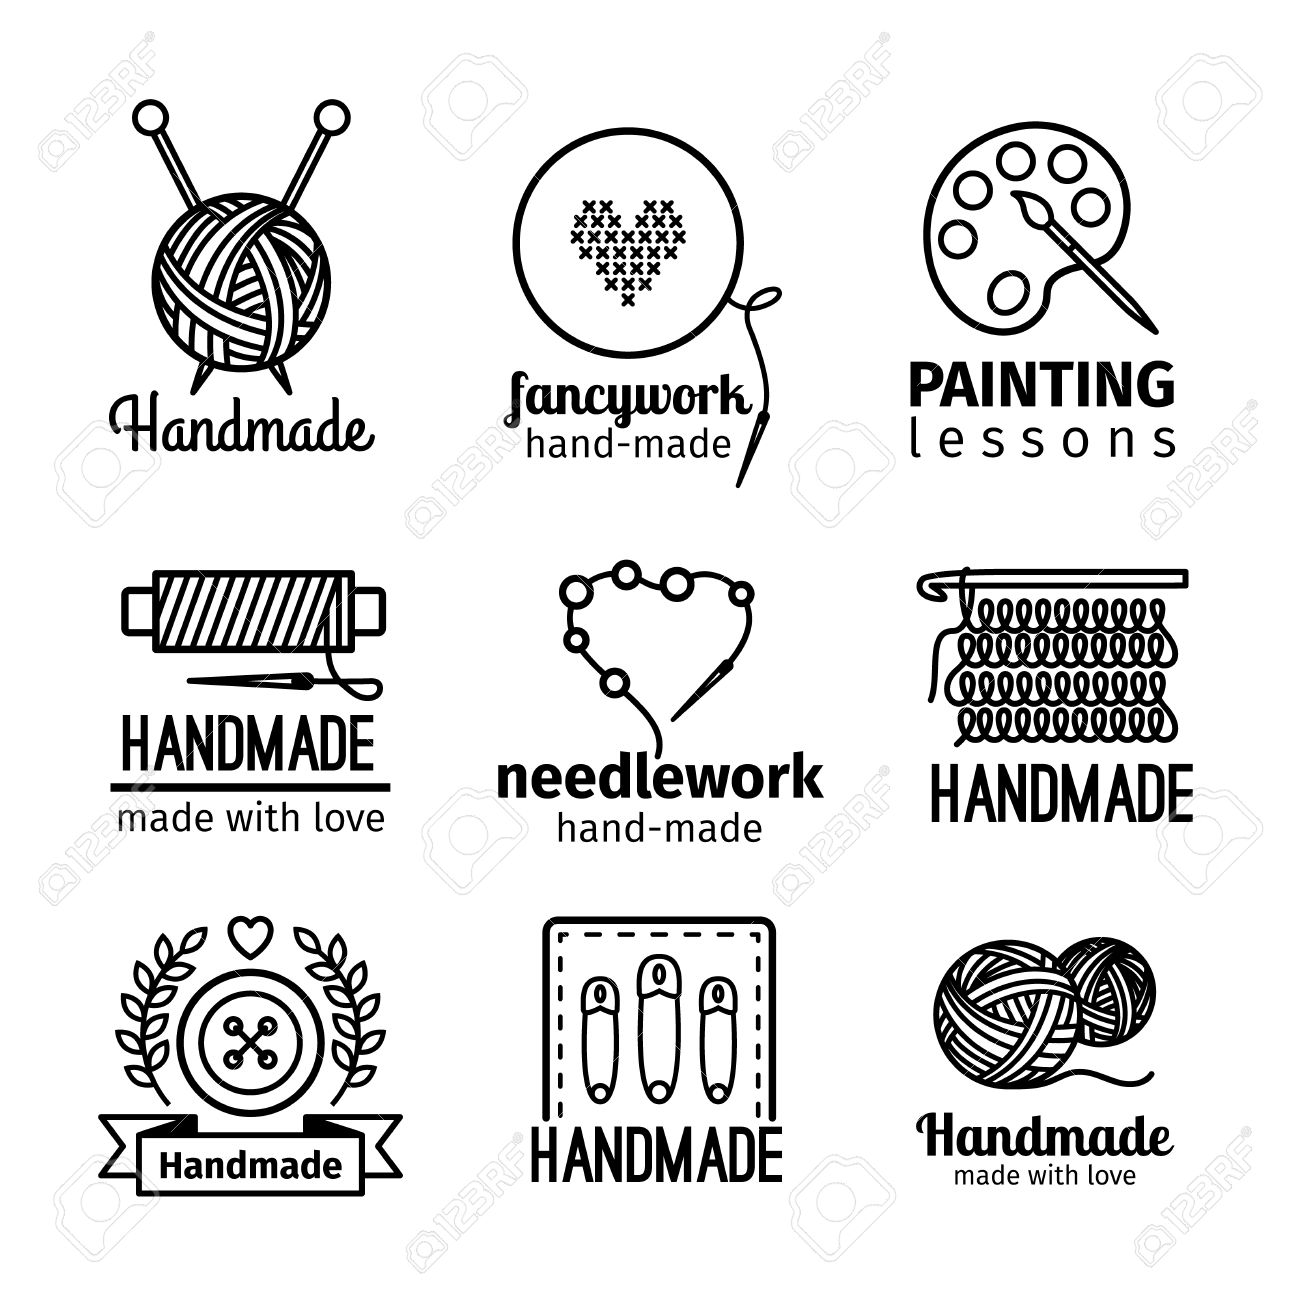 handmade black thin line icons on white background handmade